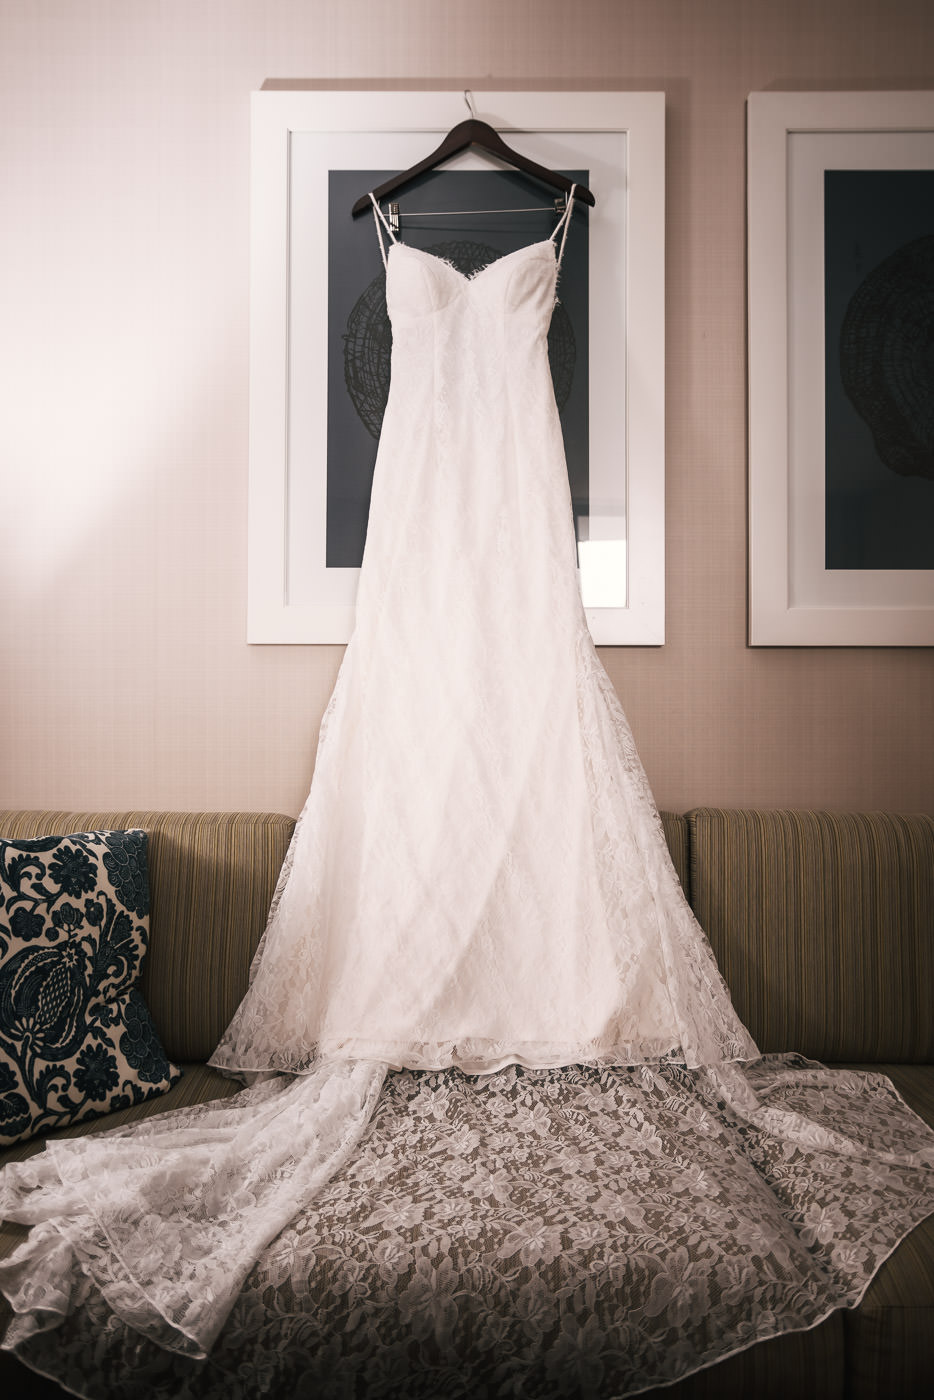 Beautiful white wedding dress hangs from a picture frame in the Brides hotel room.